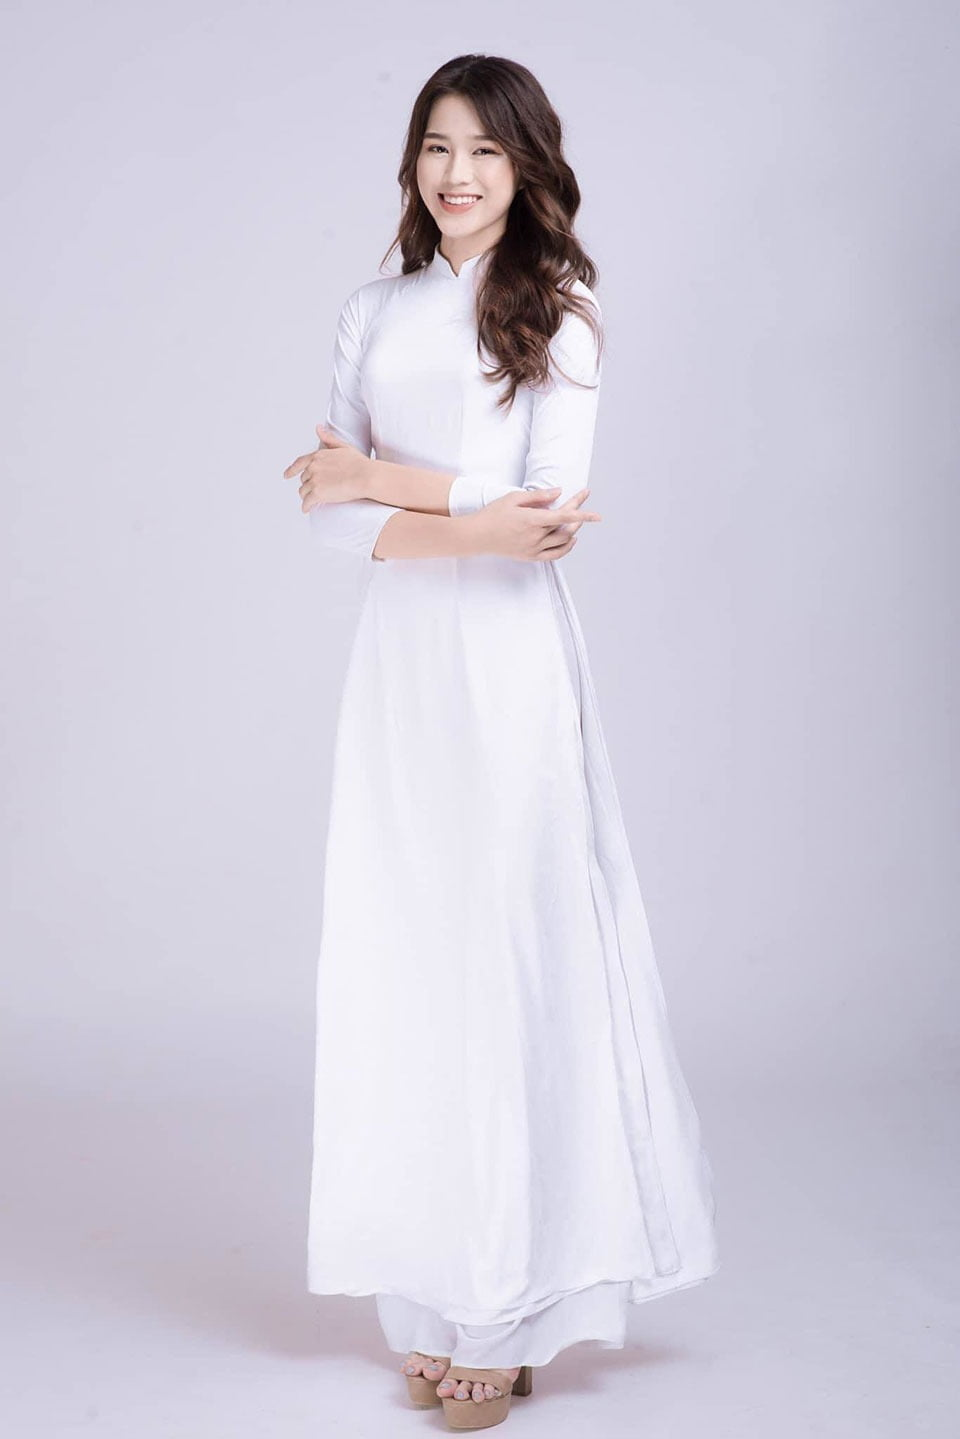 One-piece garment, Flash photography, Day dress, Smile, Waist, Sleeve, Gesture, Gown, Elbow